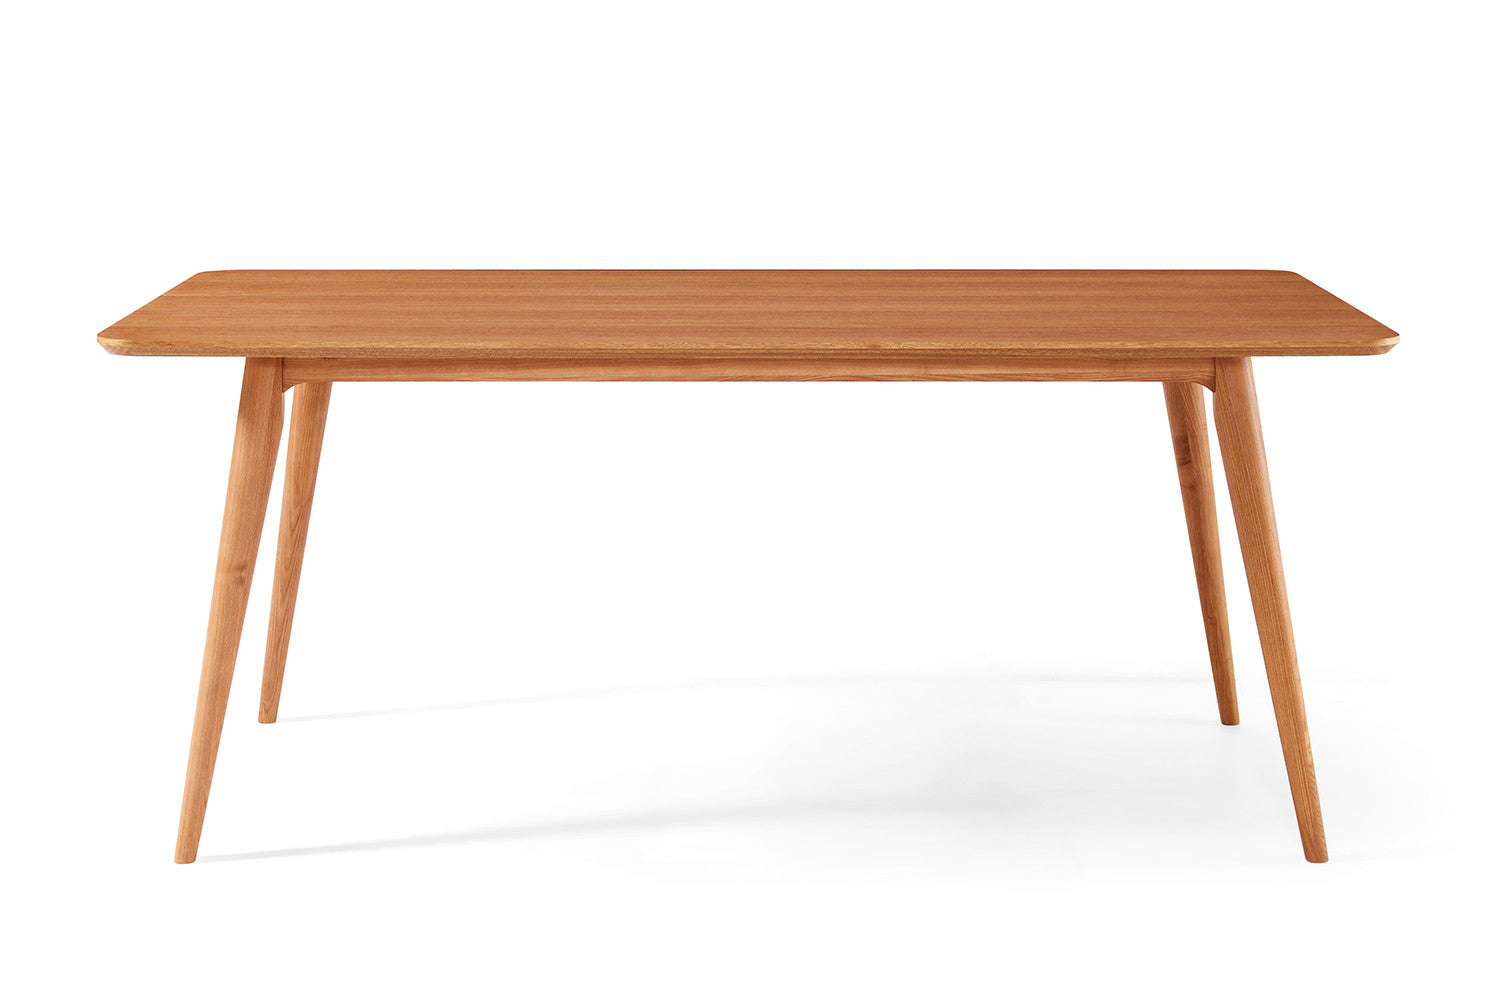 Table de salle manger design en bois julia dewarens - Tables a manger design ...